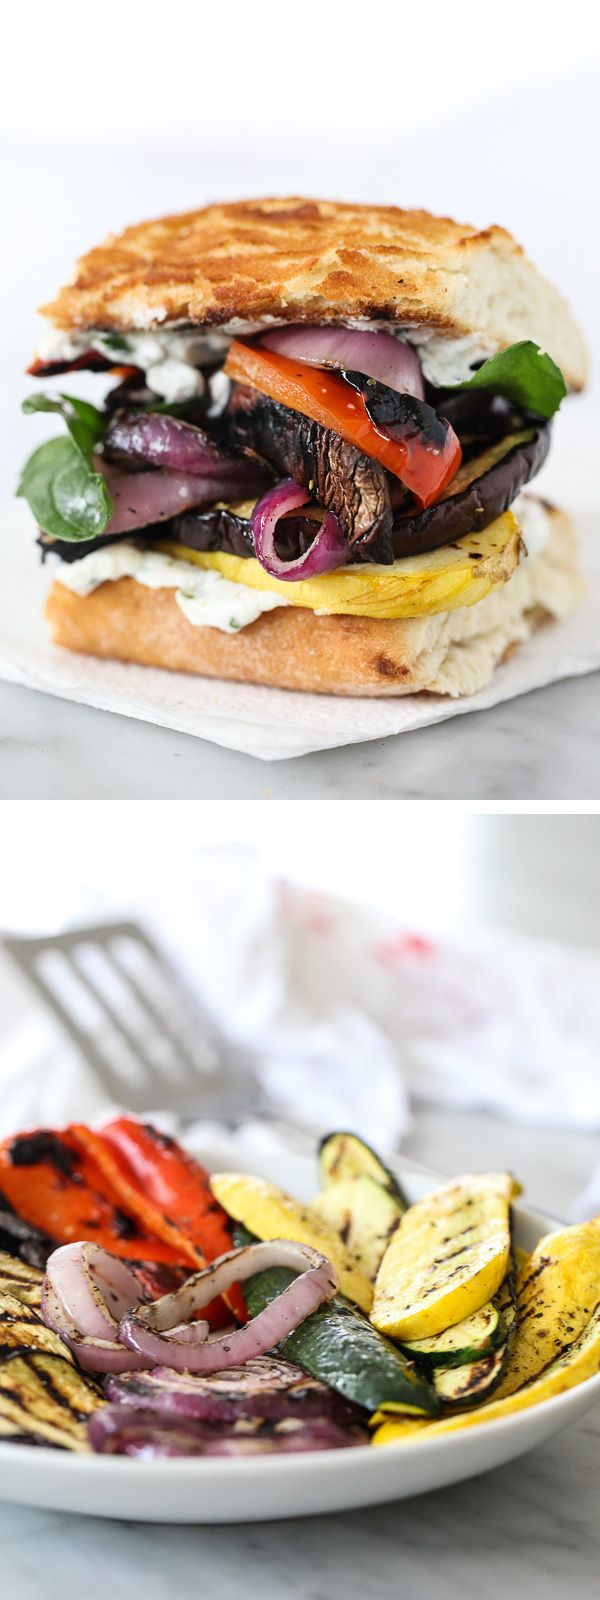 Grilled Vegetable Sandwich with Herbed Ricotta (sub tofu ricotta for vegan) #recipe on foodiecrush.com